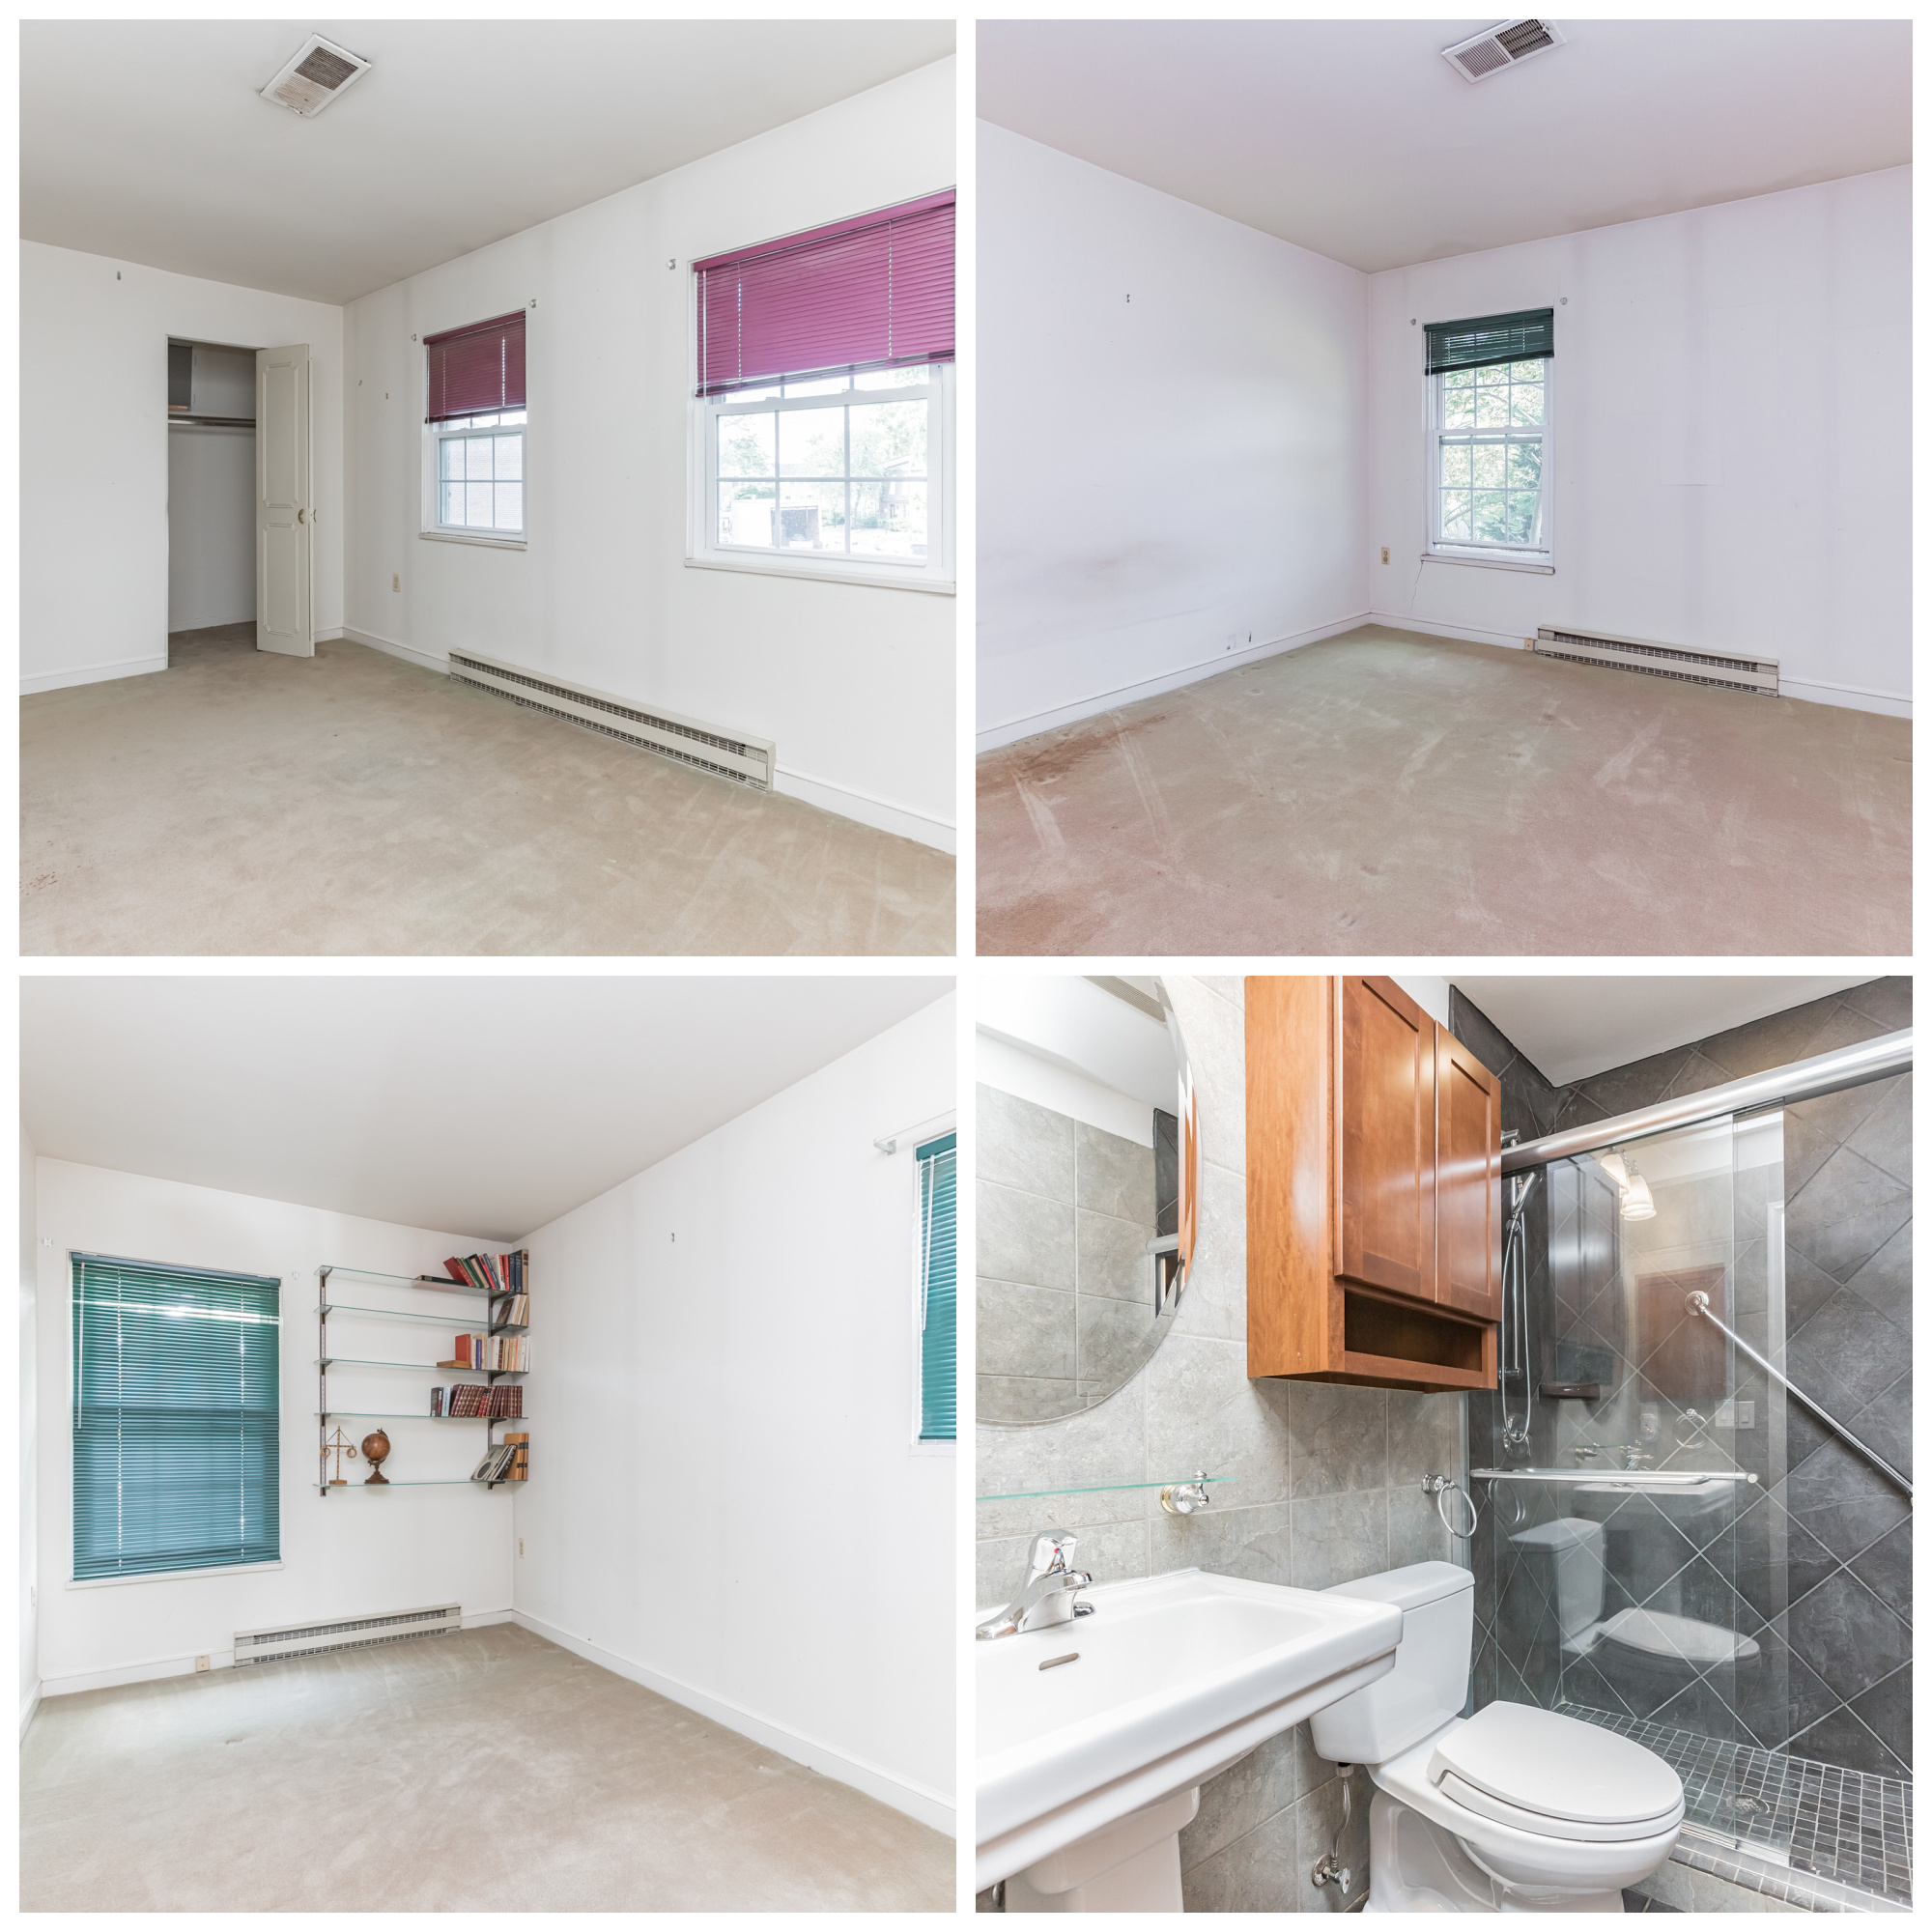 736 Colonial Ave, Sterling- Bedrooms and Bathroom